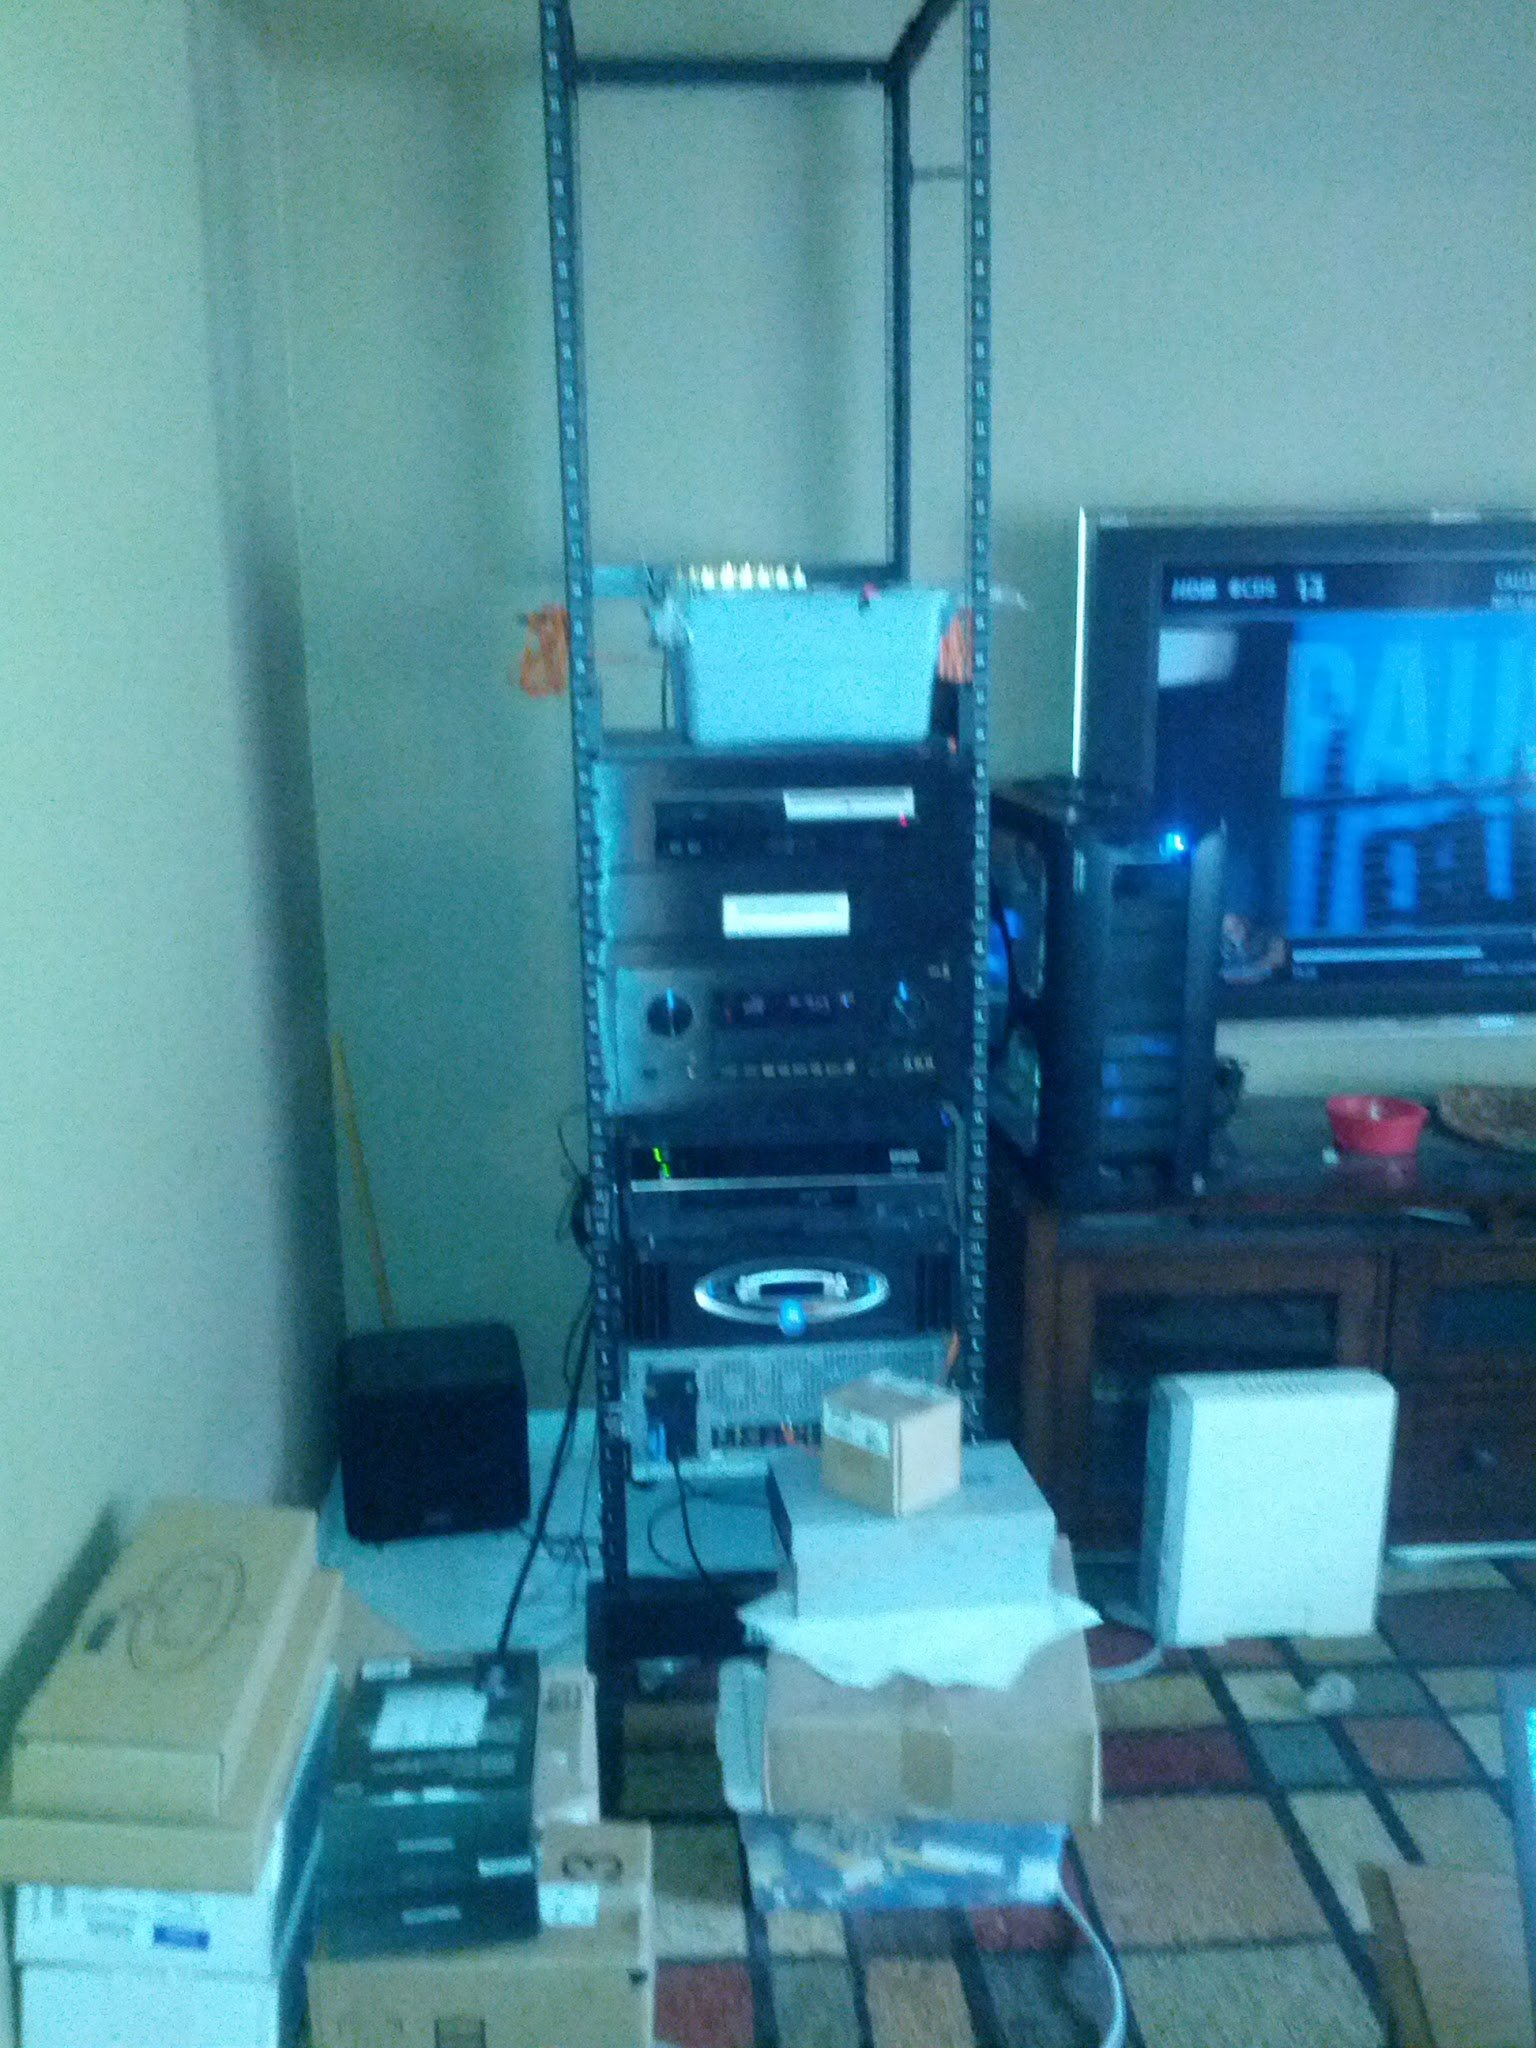 My Home Theater Rack and Equipment room - AVS Forum | Home Theater ...